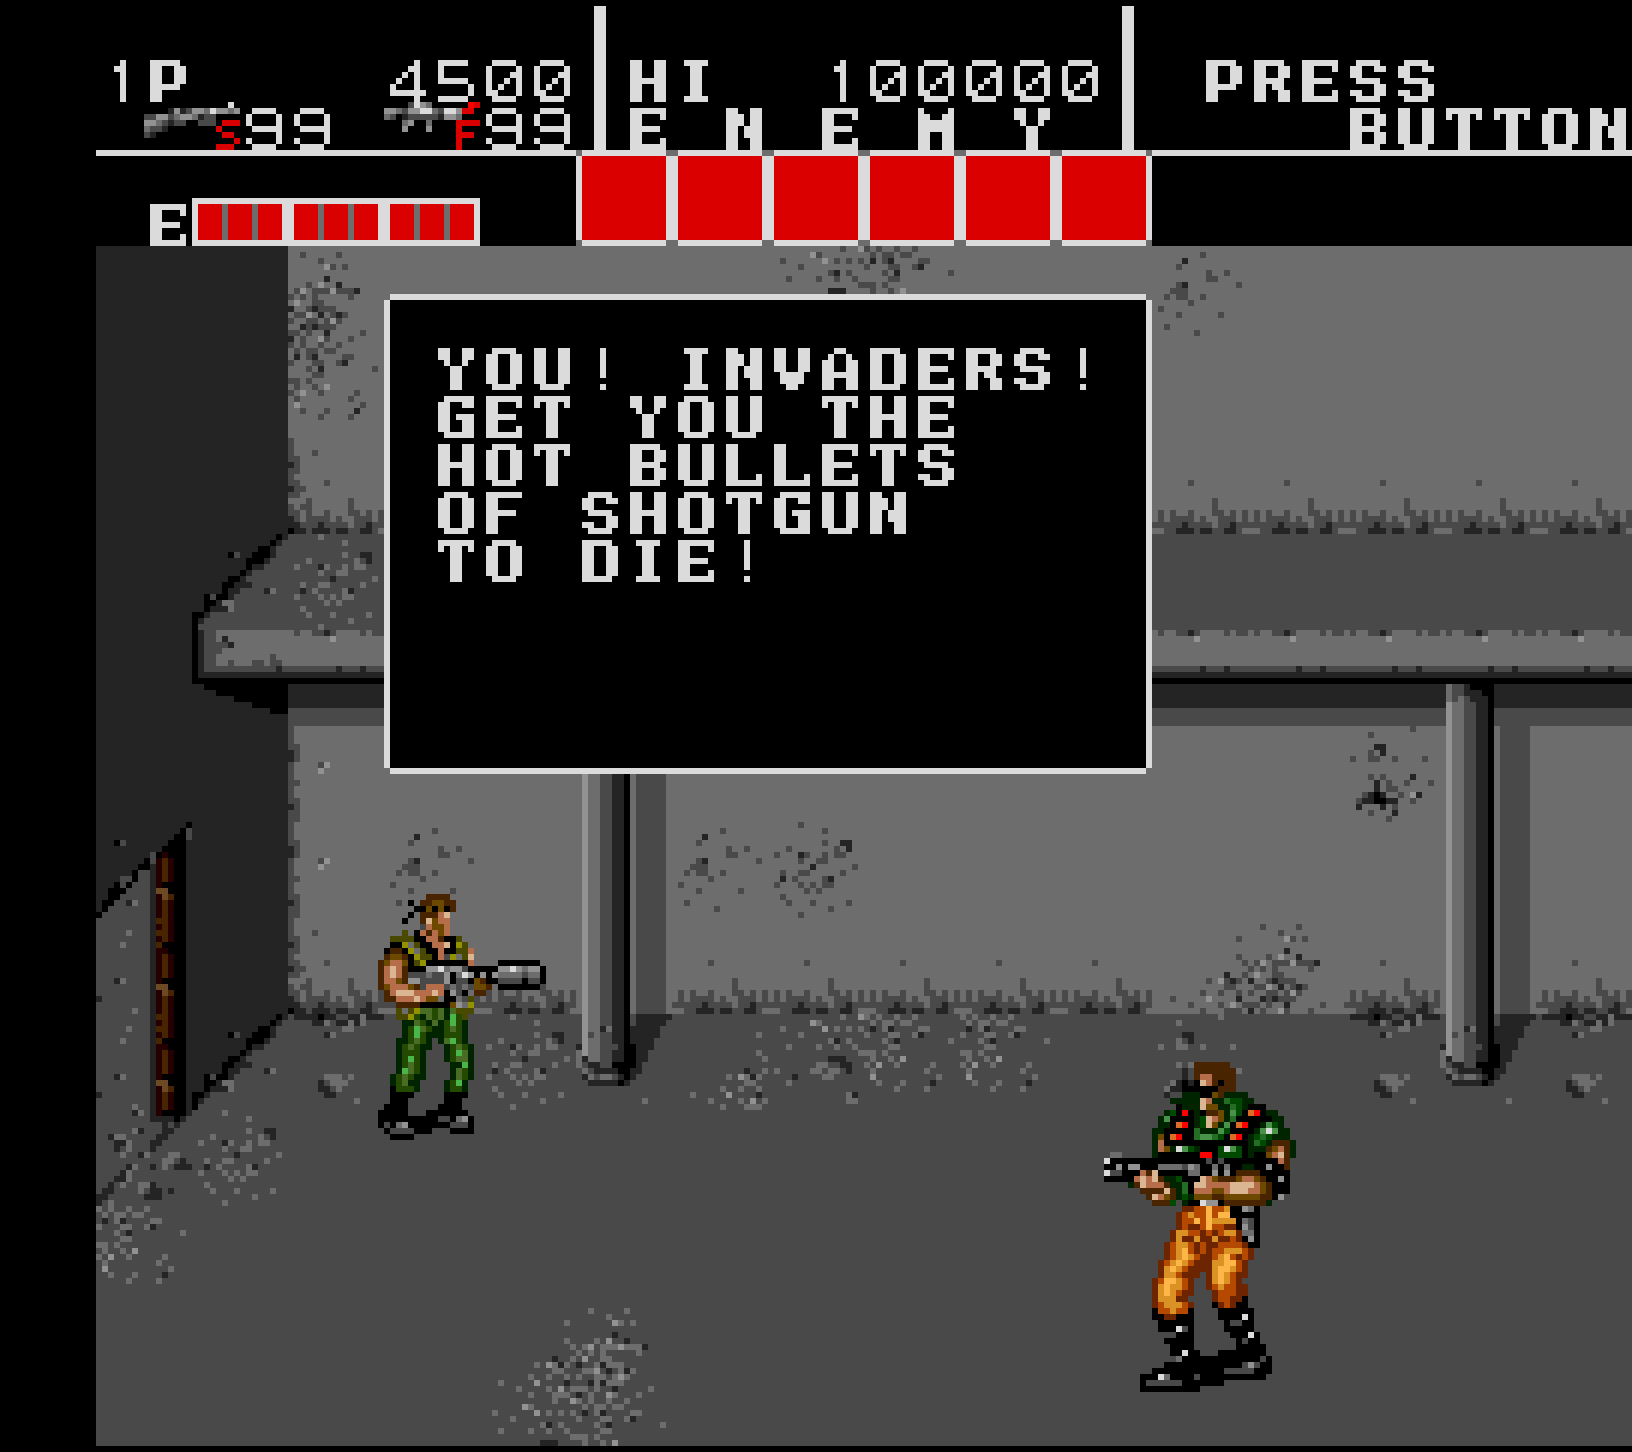 You! Invaders! Get you the hot bullets of shotgun to die!